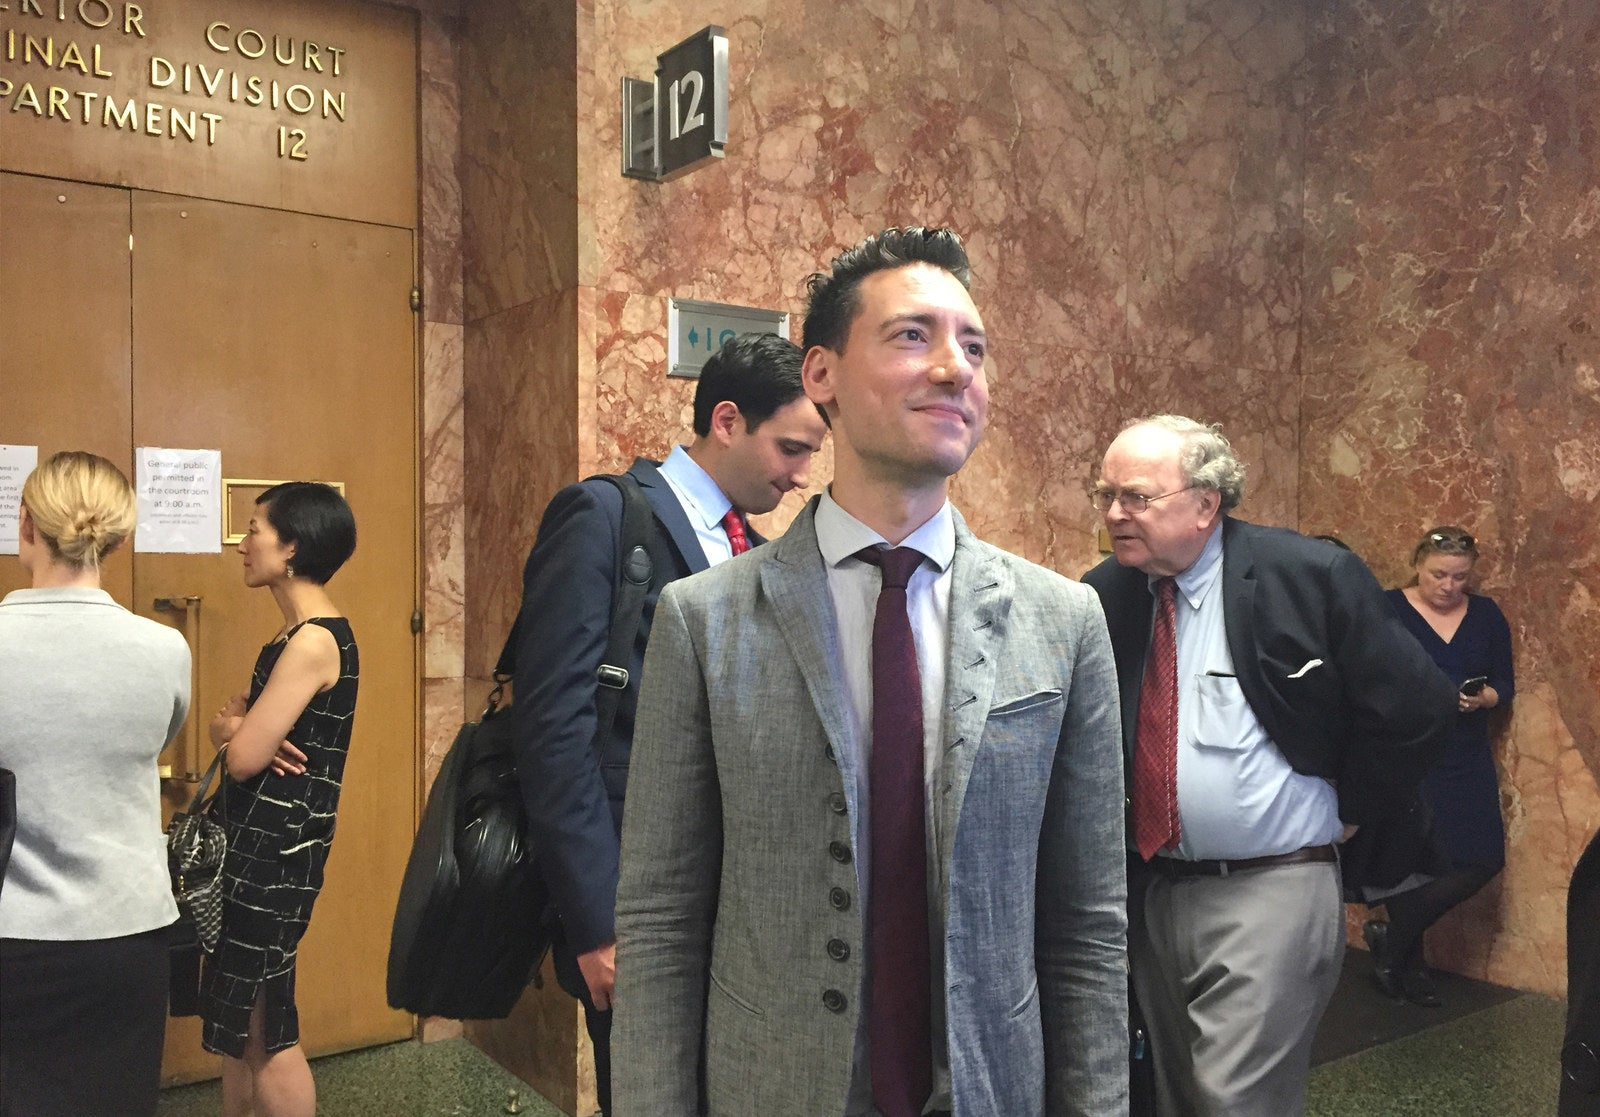 So he begrudgingly took to facebook to sell the suit and also decided - The Man Who Secretly Taped Planned Parenthood Could Be Going To Prison Alongside His Criminal Lawyers